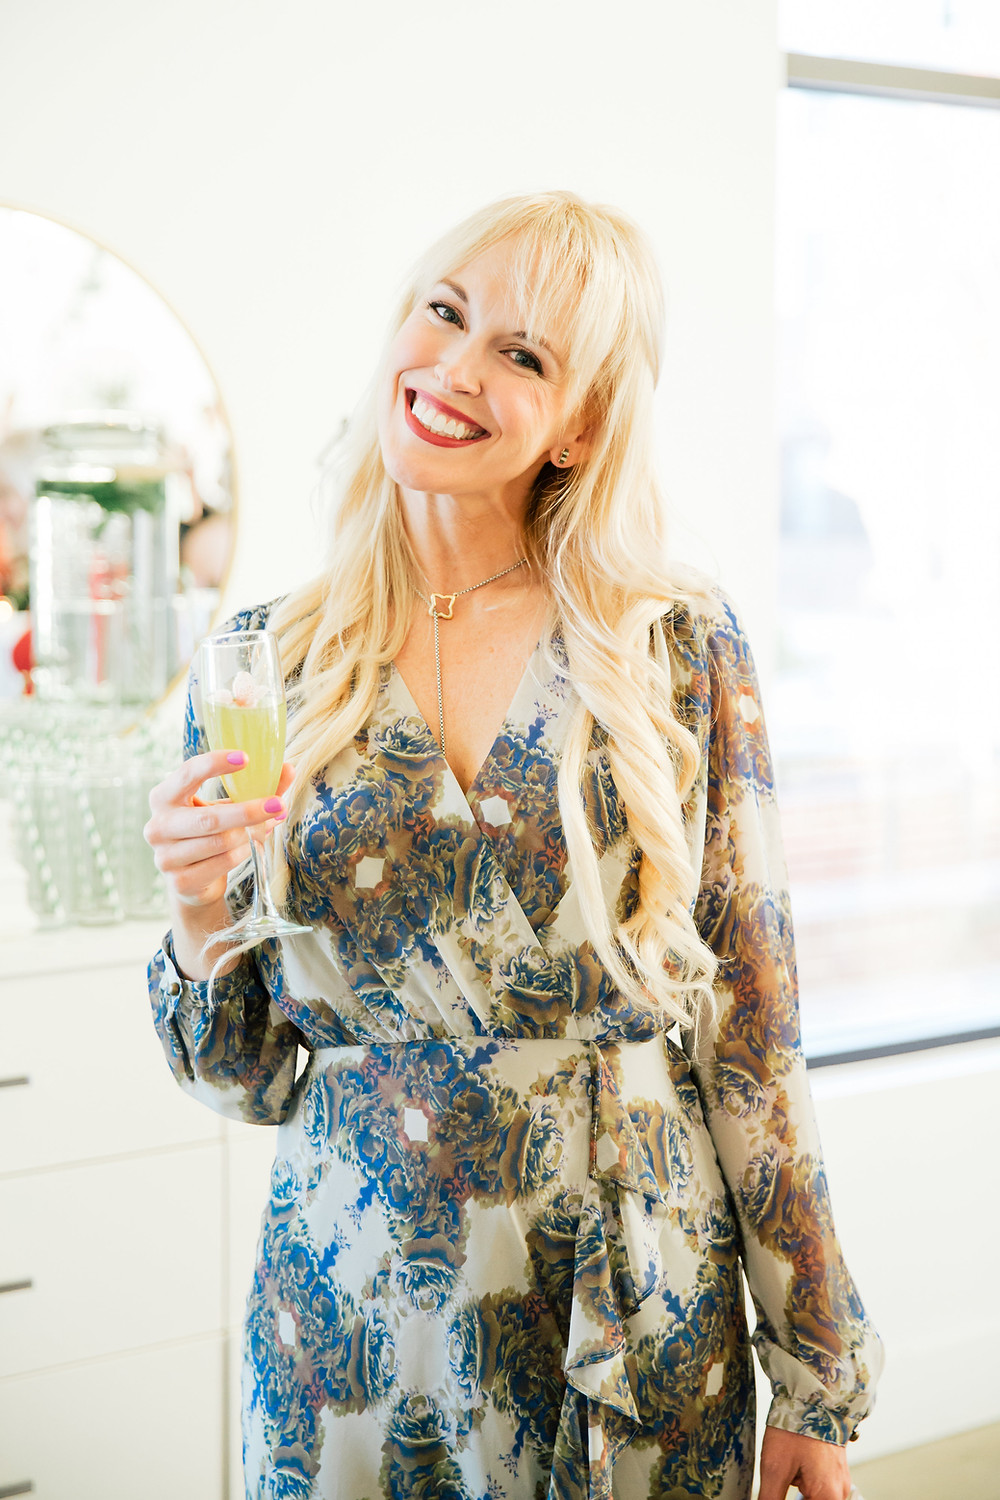 Stylist and lifestyle blogger Brooke Williams sips a cocktail while she mingles at Engaged's Launch Party